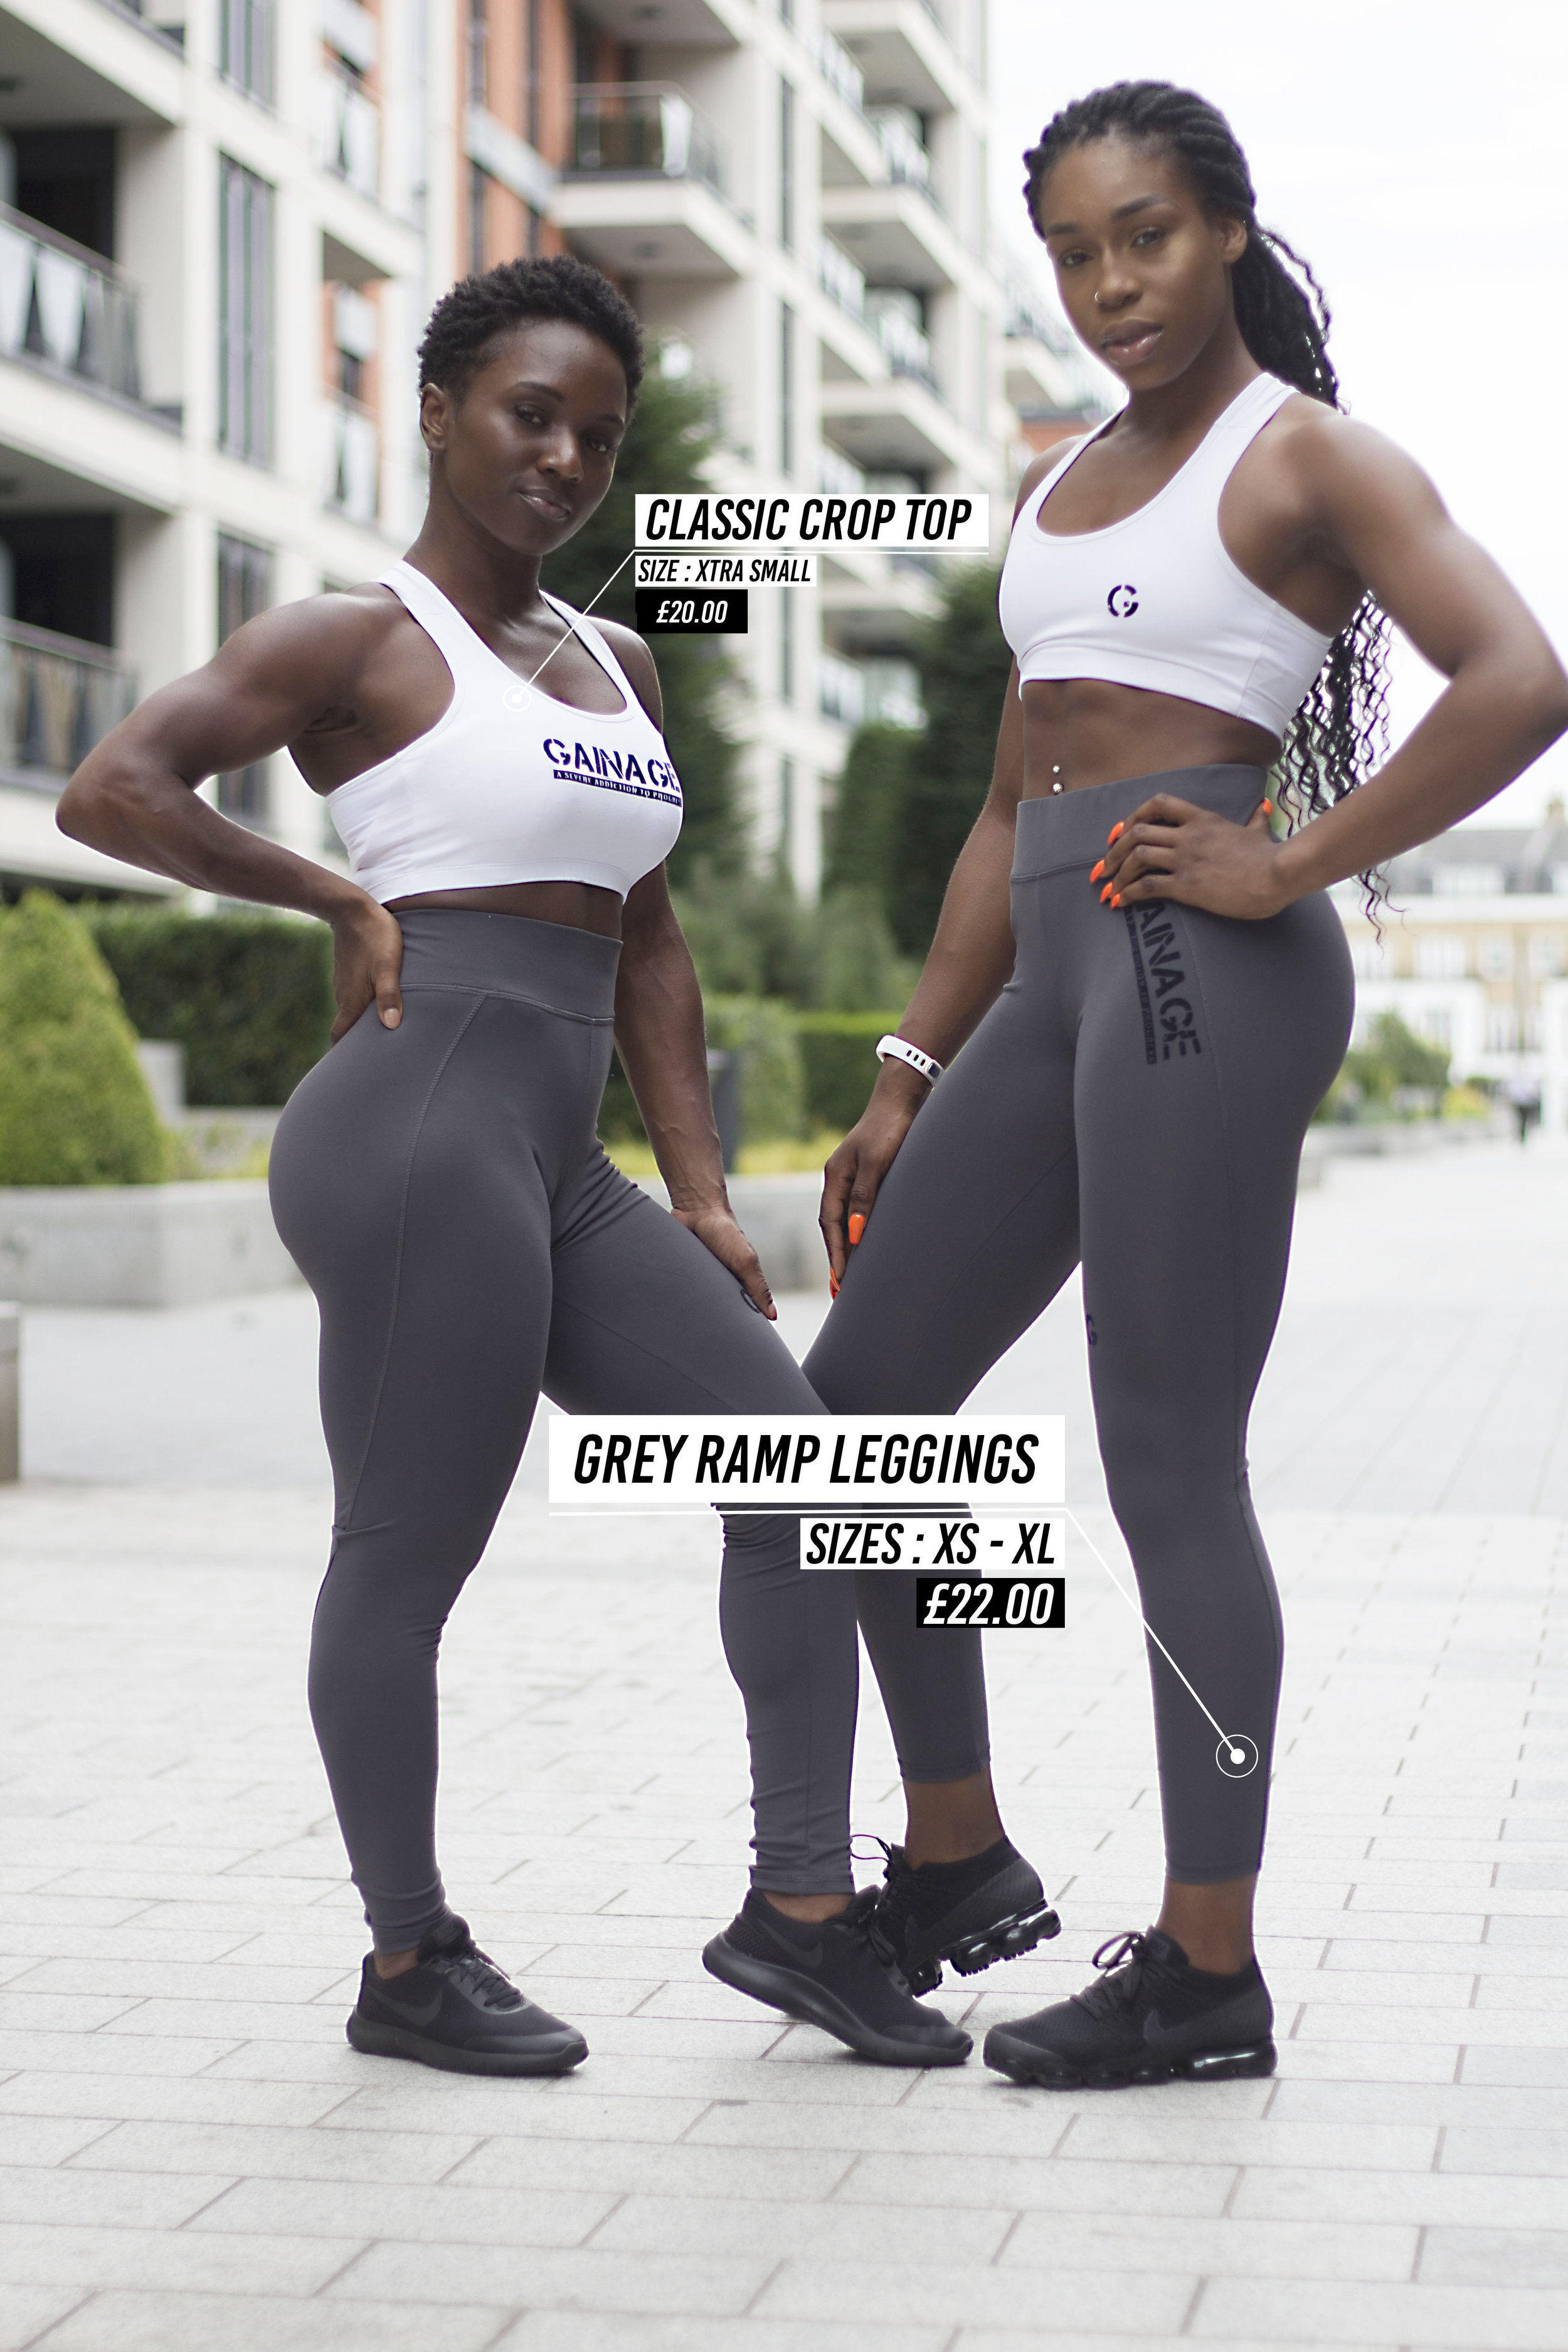 Photo: Fitness influencers,  Kariilondon  and  OhMariaFiit  sporting GAINAGE